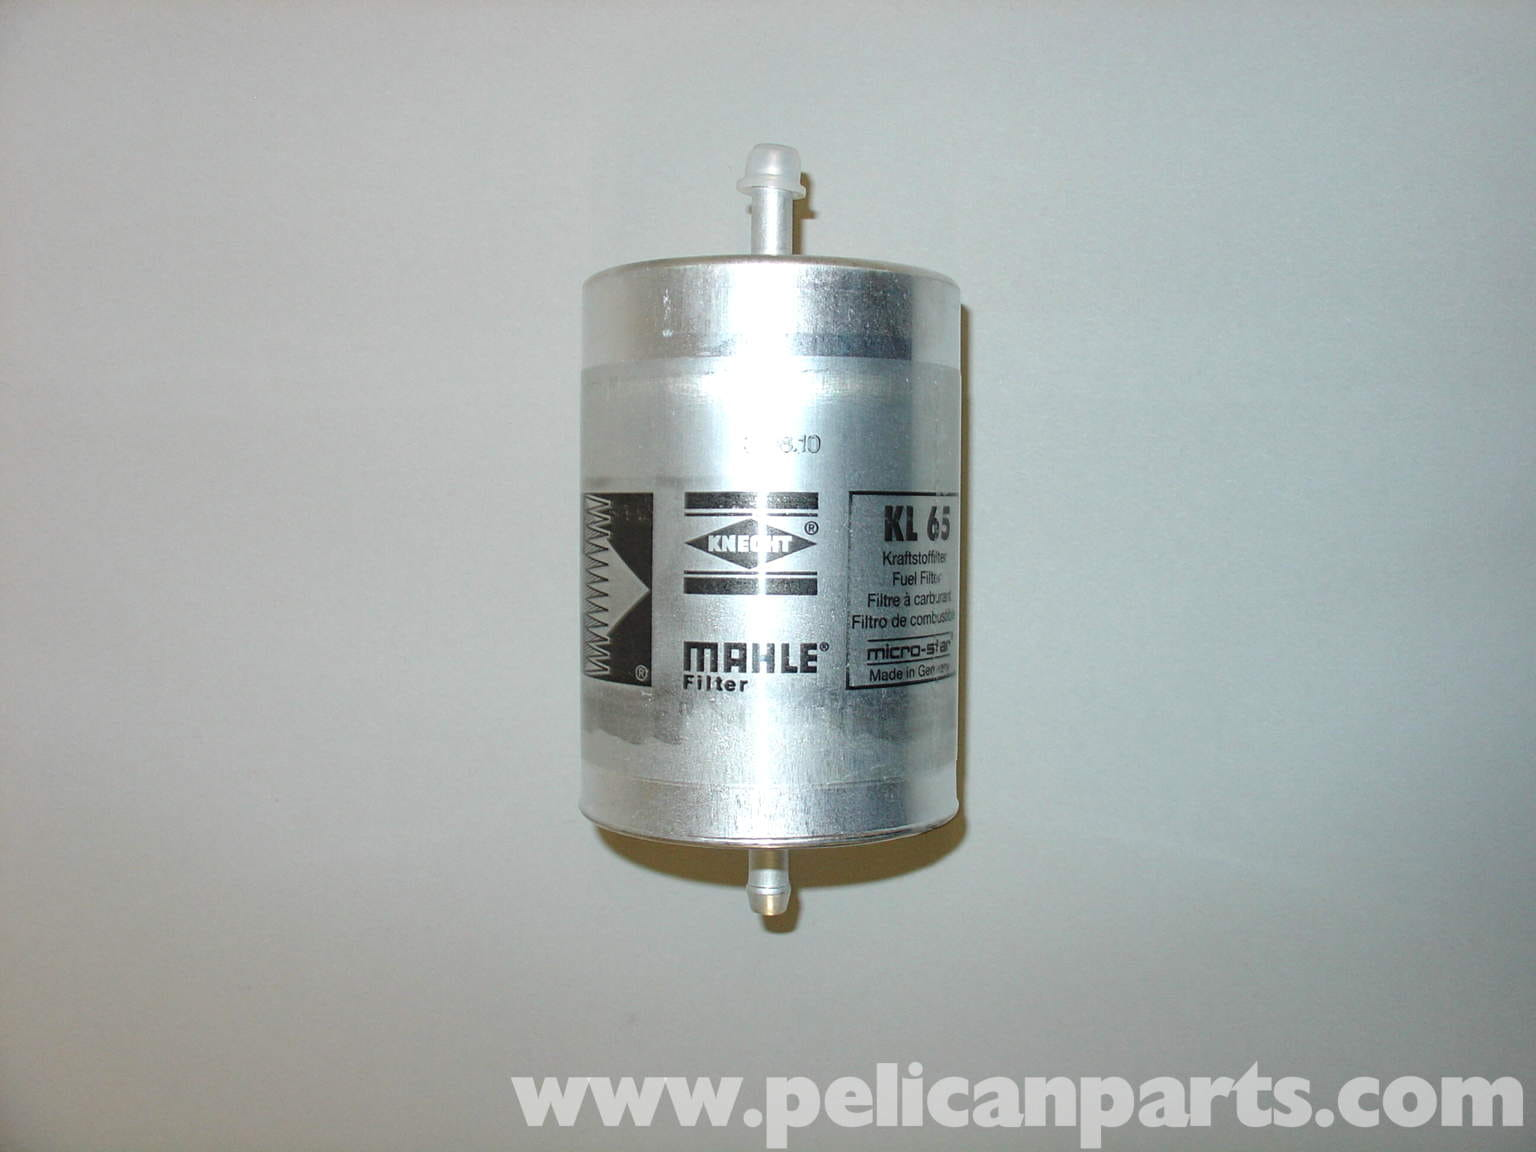 mercedes-benz w210 fuel filter replacement (1996-03) e320 ... mercedes benz fuel system diagrams mercedes benz fuel filters